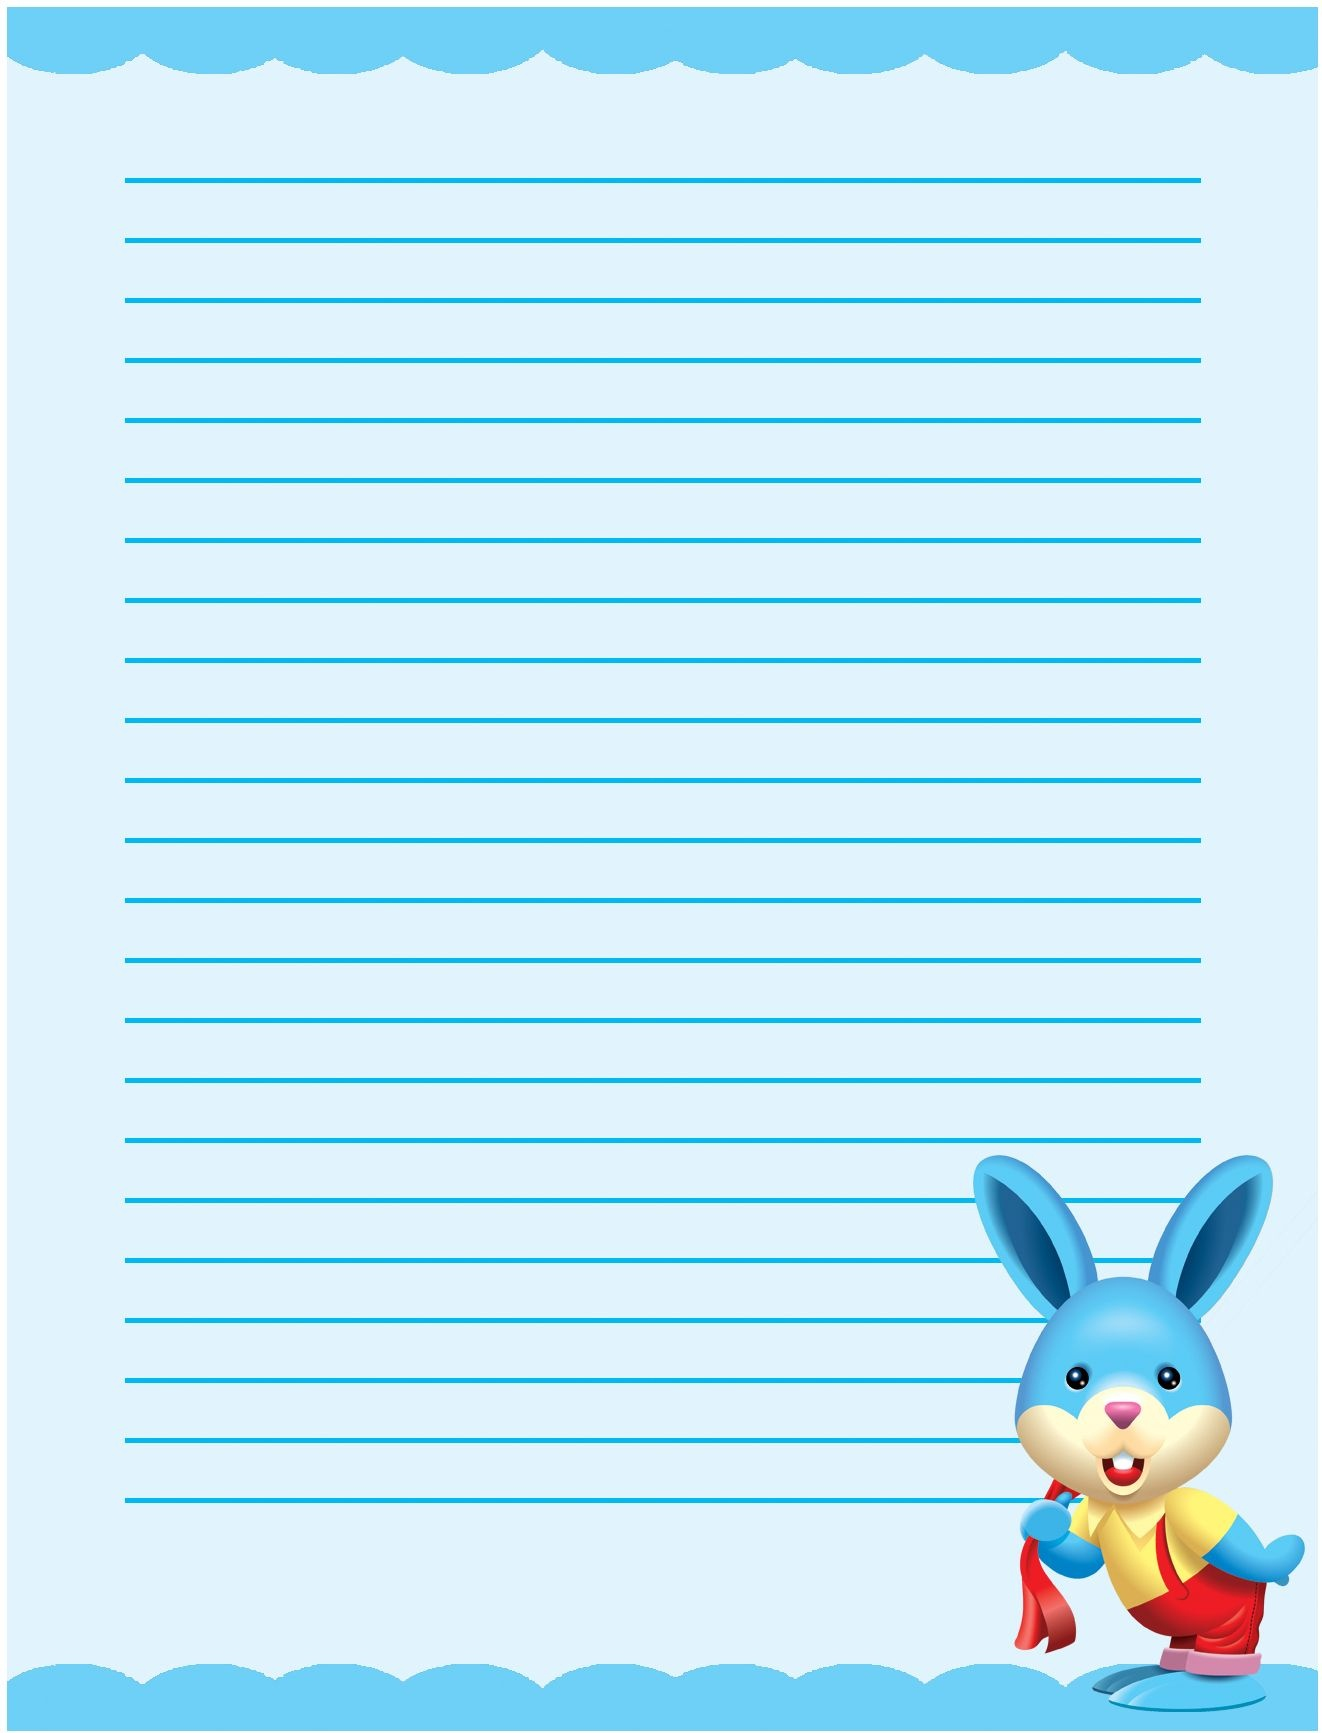 Free Printable Writing Paper, Free Stationery Templates For School - Free Printable Stationary With Lines